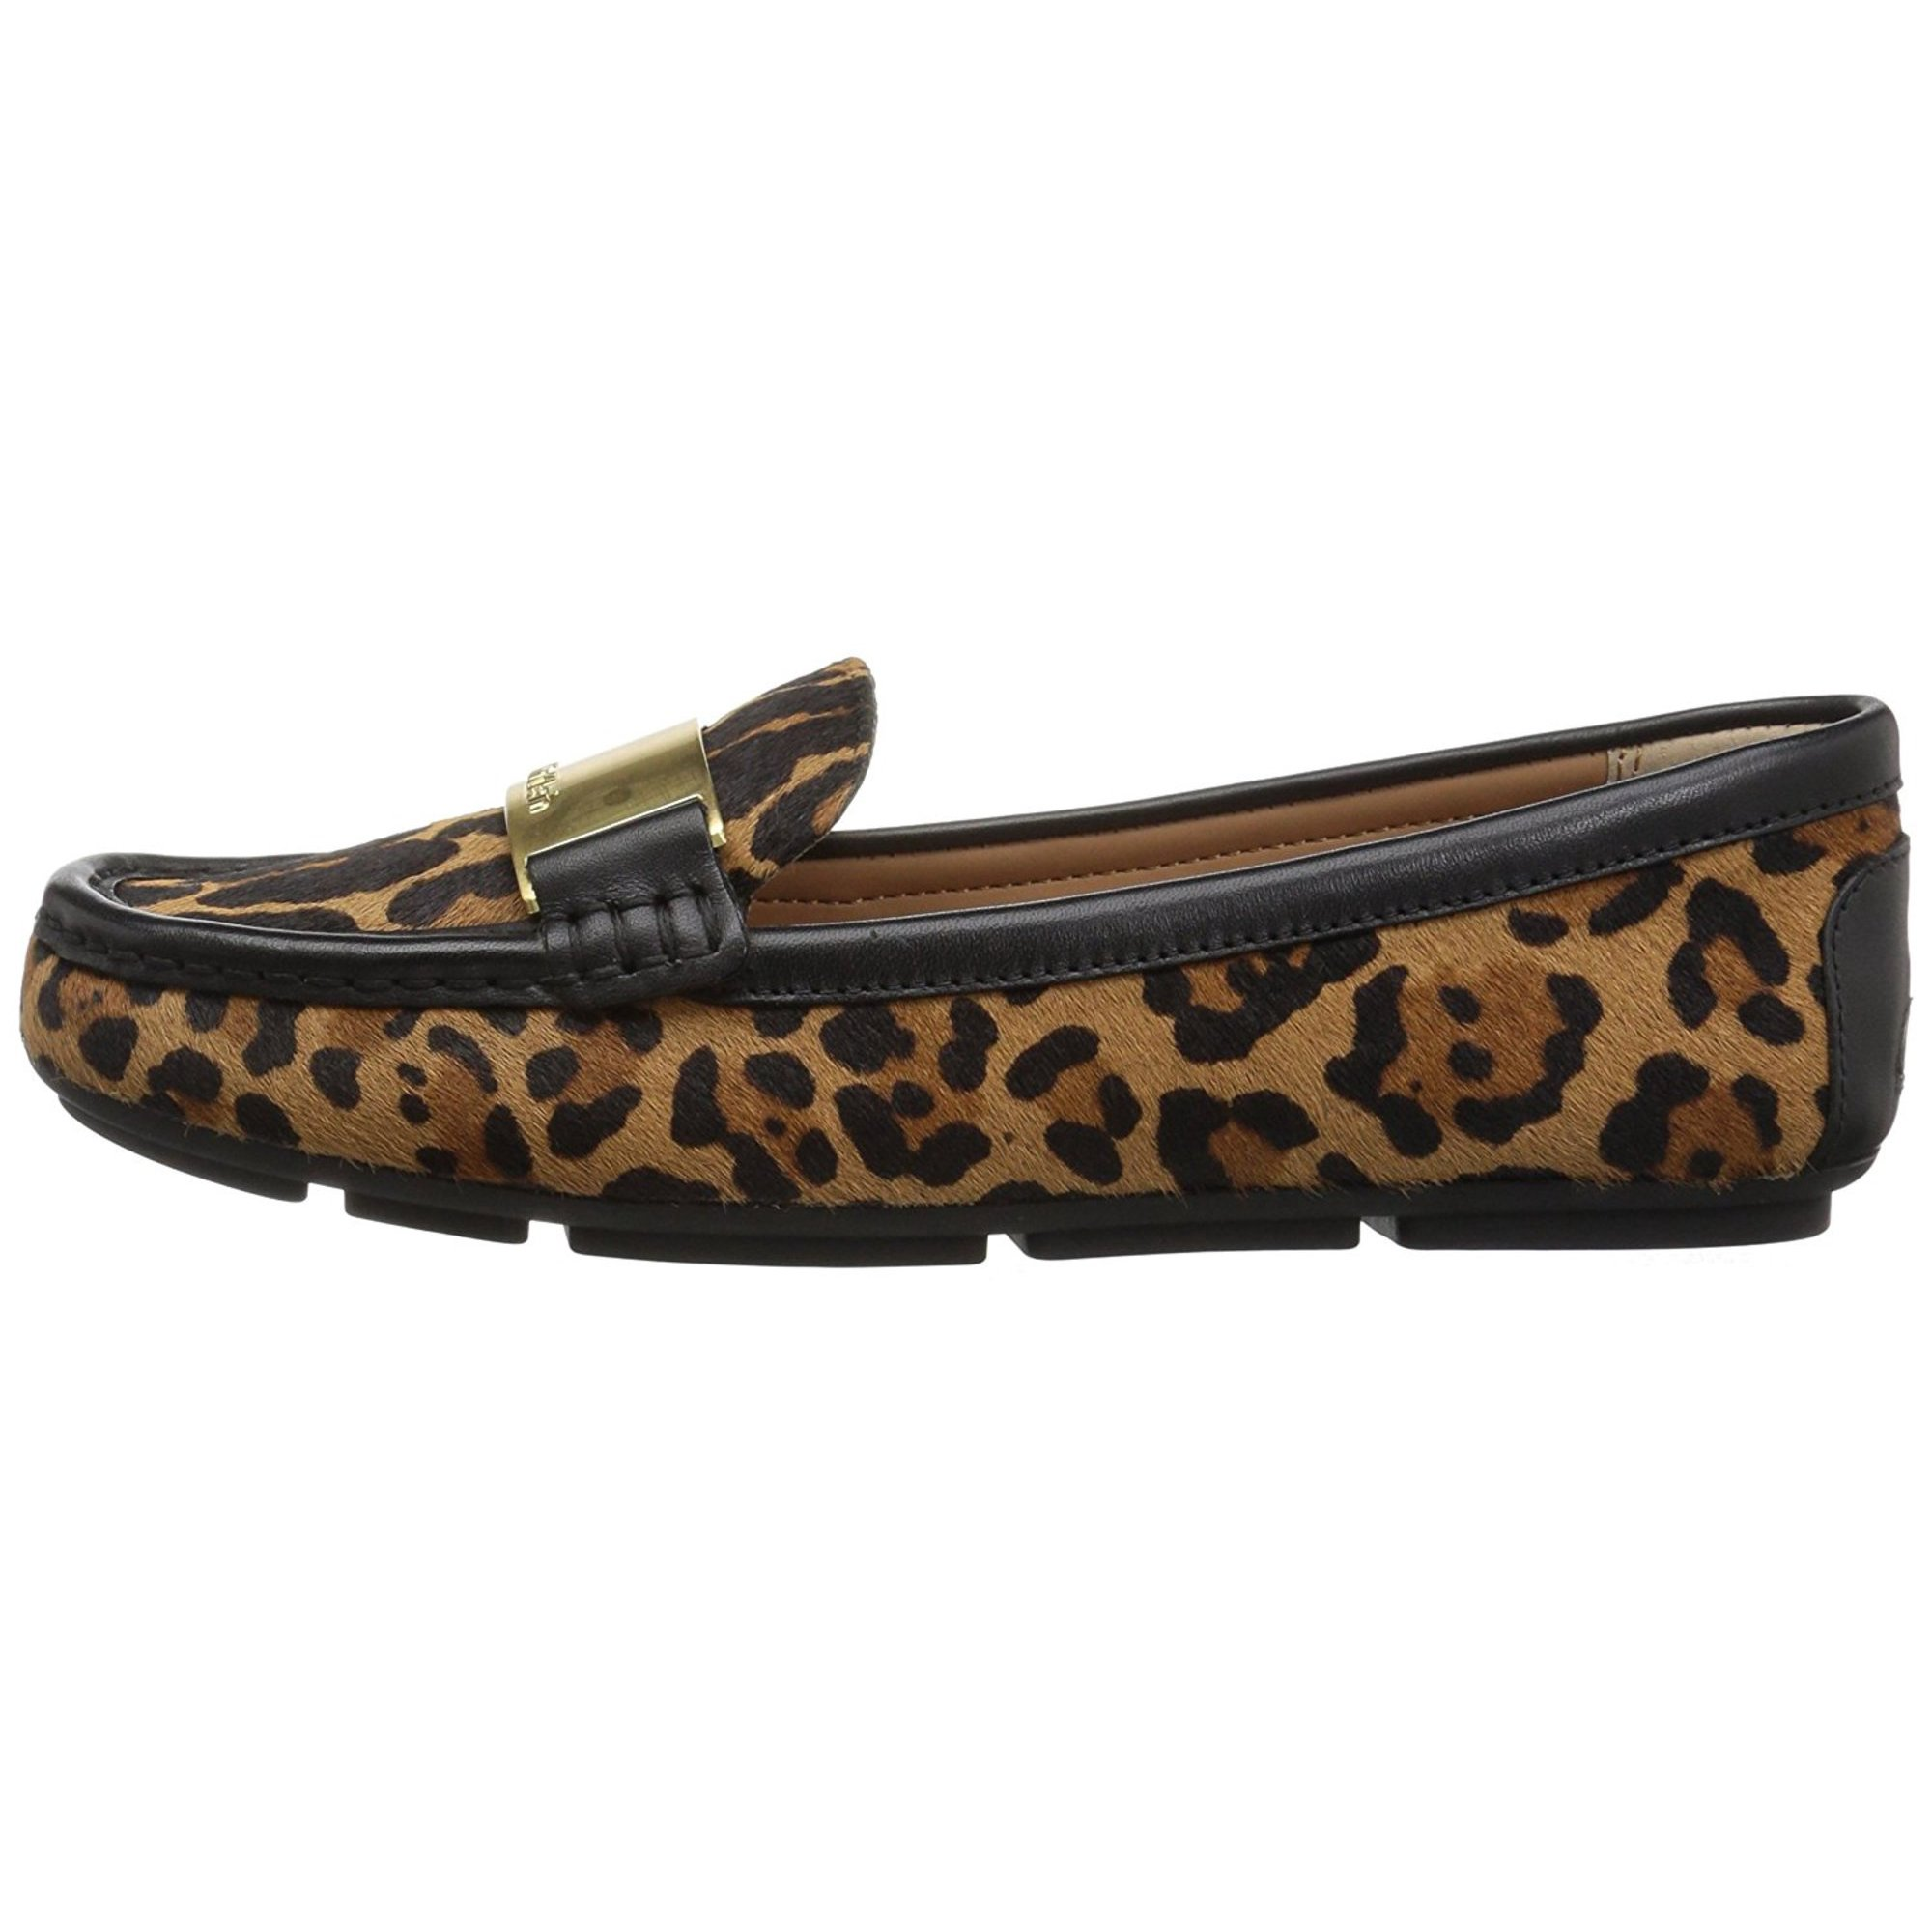 2a9c713fe8a Calvin Klein Womens Lisette Leather Closed Toe Loafers